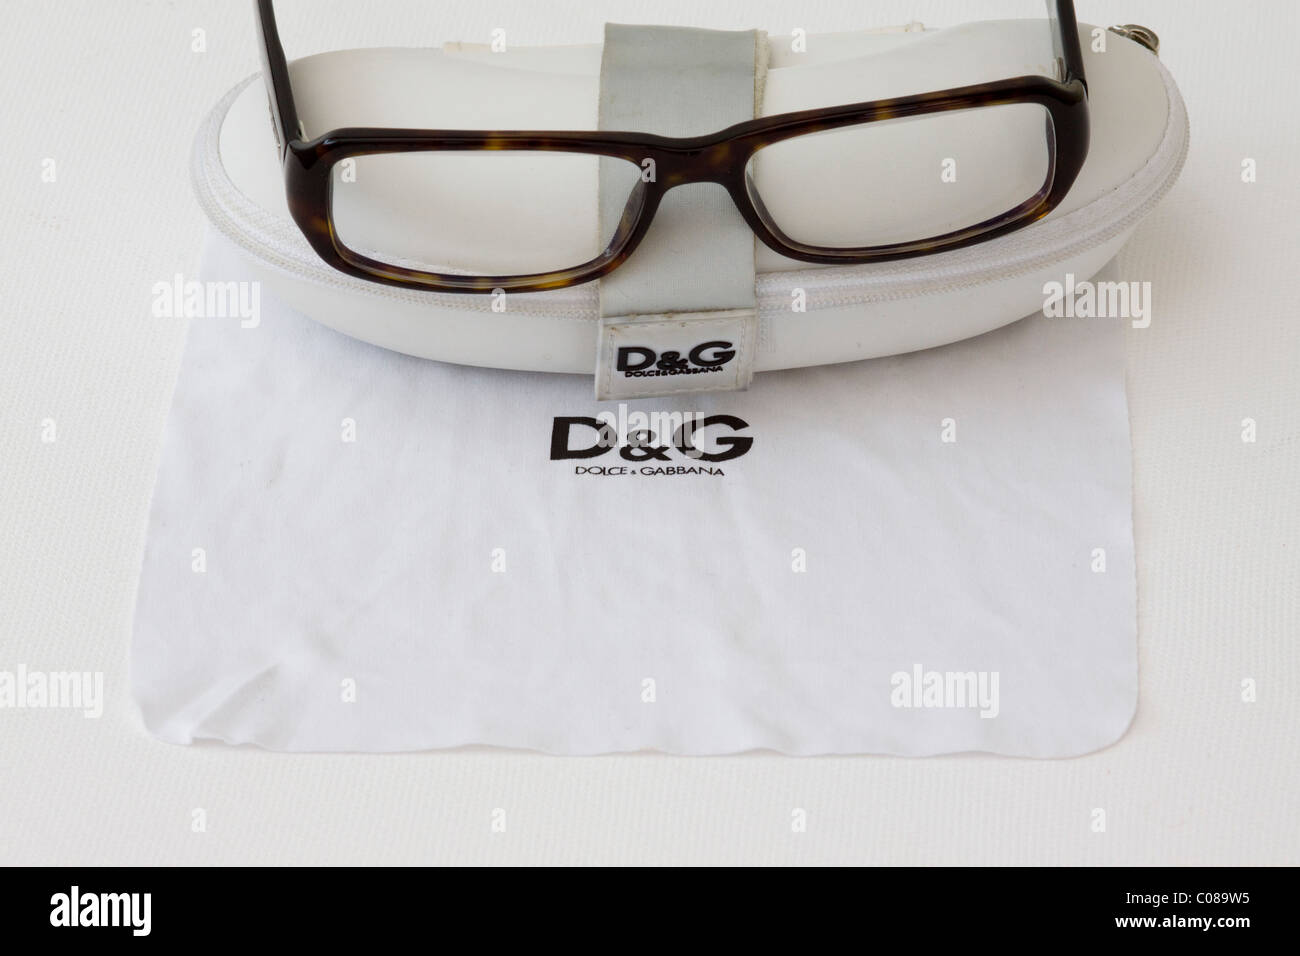 Dolce and Gabbana Prescription Glasses and cleaning cloth - Stock Image